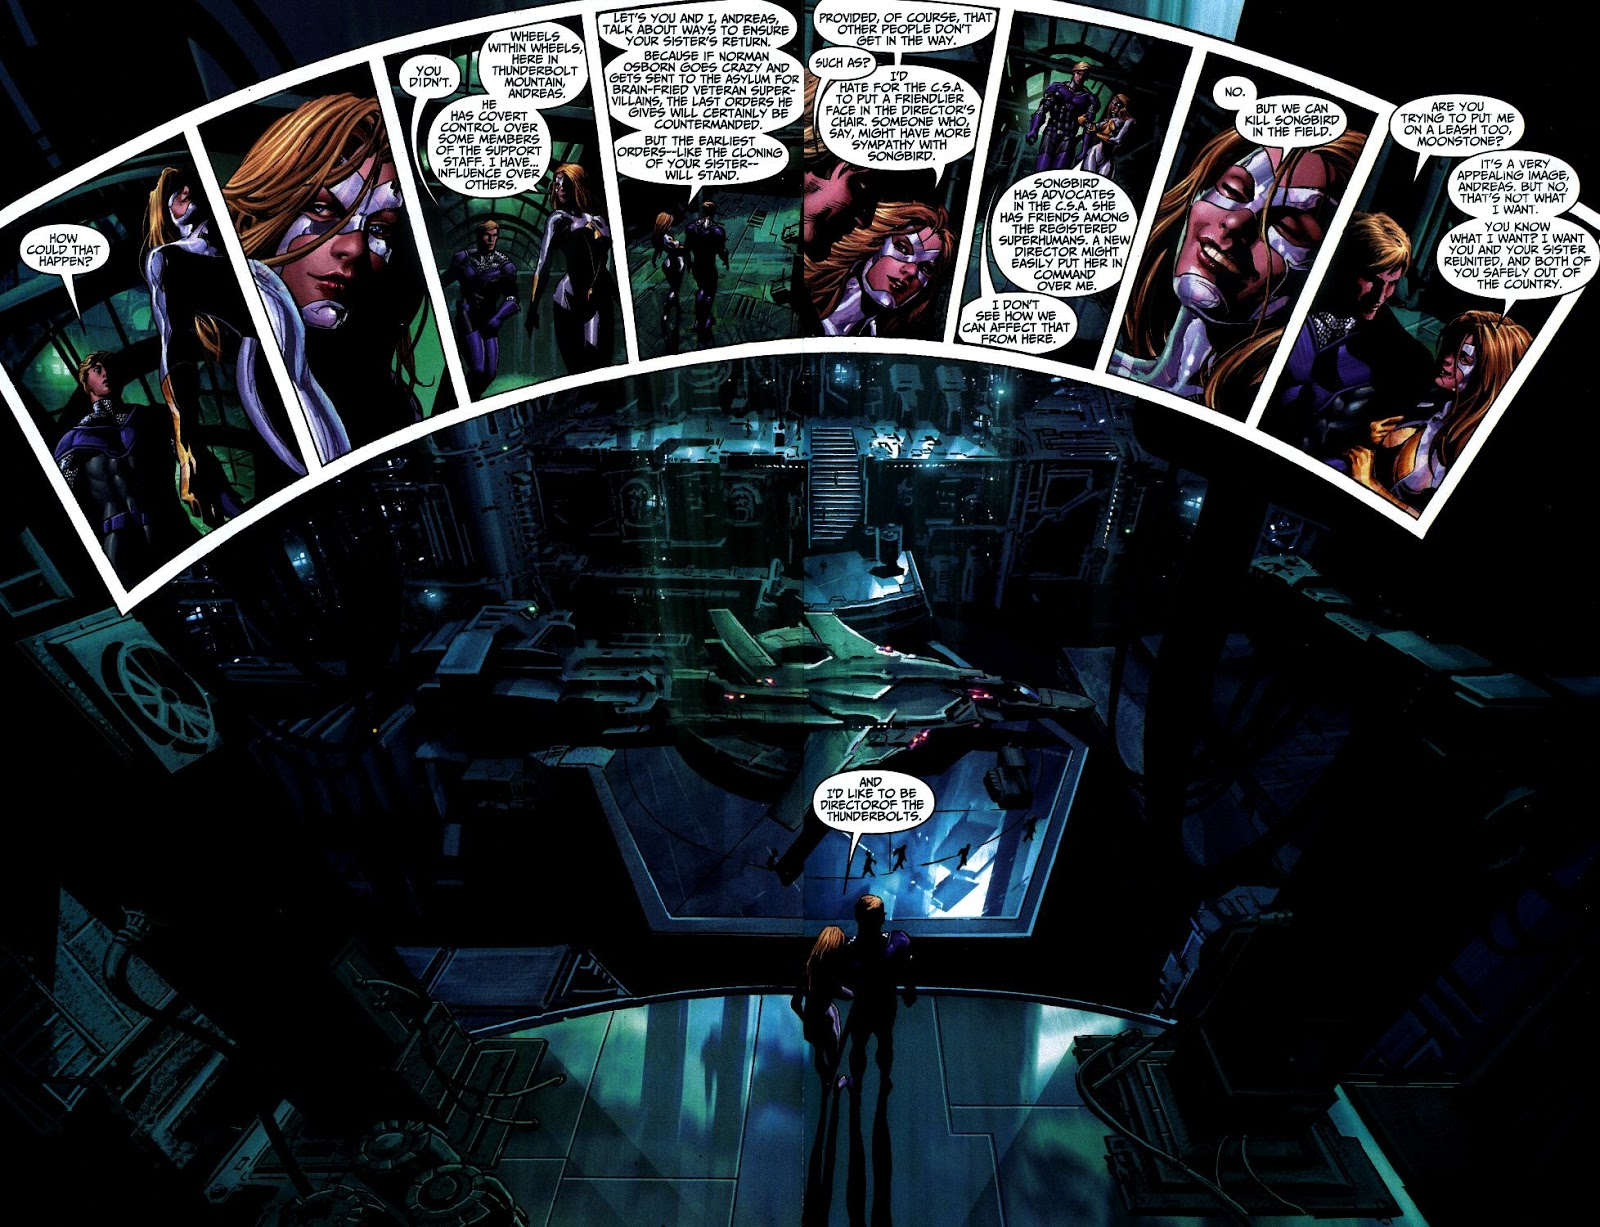 Thunderbolts by Ellis and Deodato Ultimate Collection review